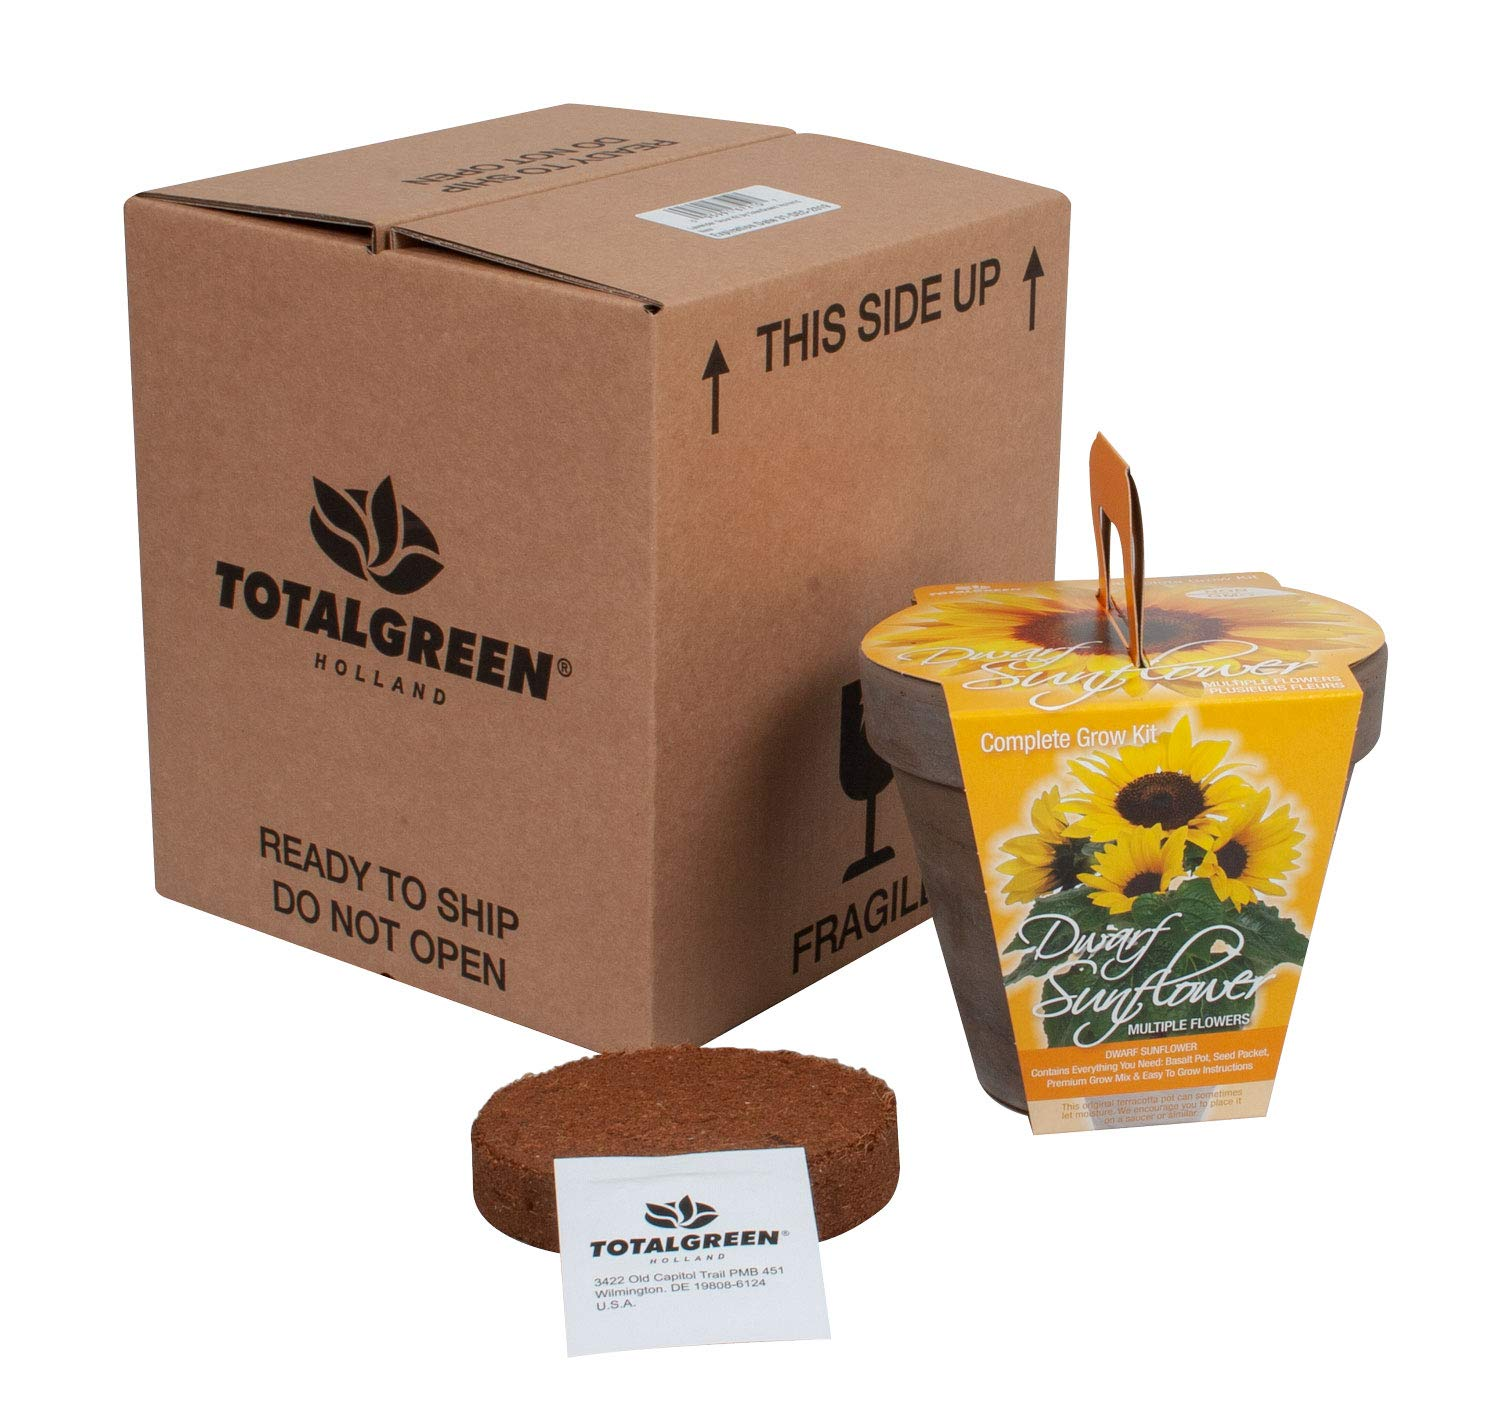 Quality Sunflower Grow Kit | Grow Your Own Unique Dwarf Sunflower from Seed in Just A Few Weeks | Unique Basalt Pot, Non-GMO Mother's Day Gardening Kit with Easy Instructions | by TotalGreen Holland (Image #5)